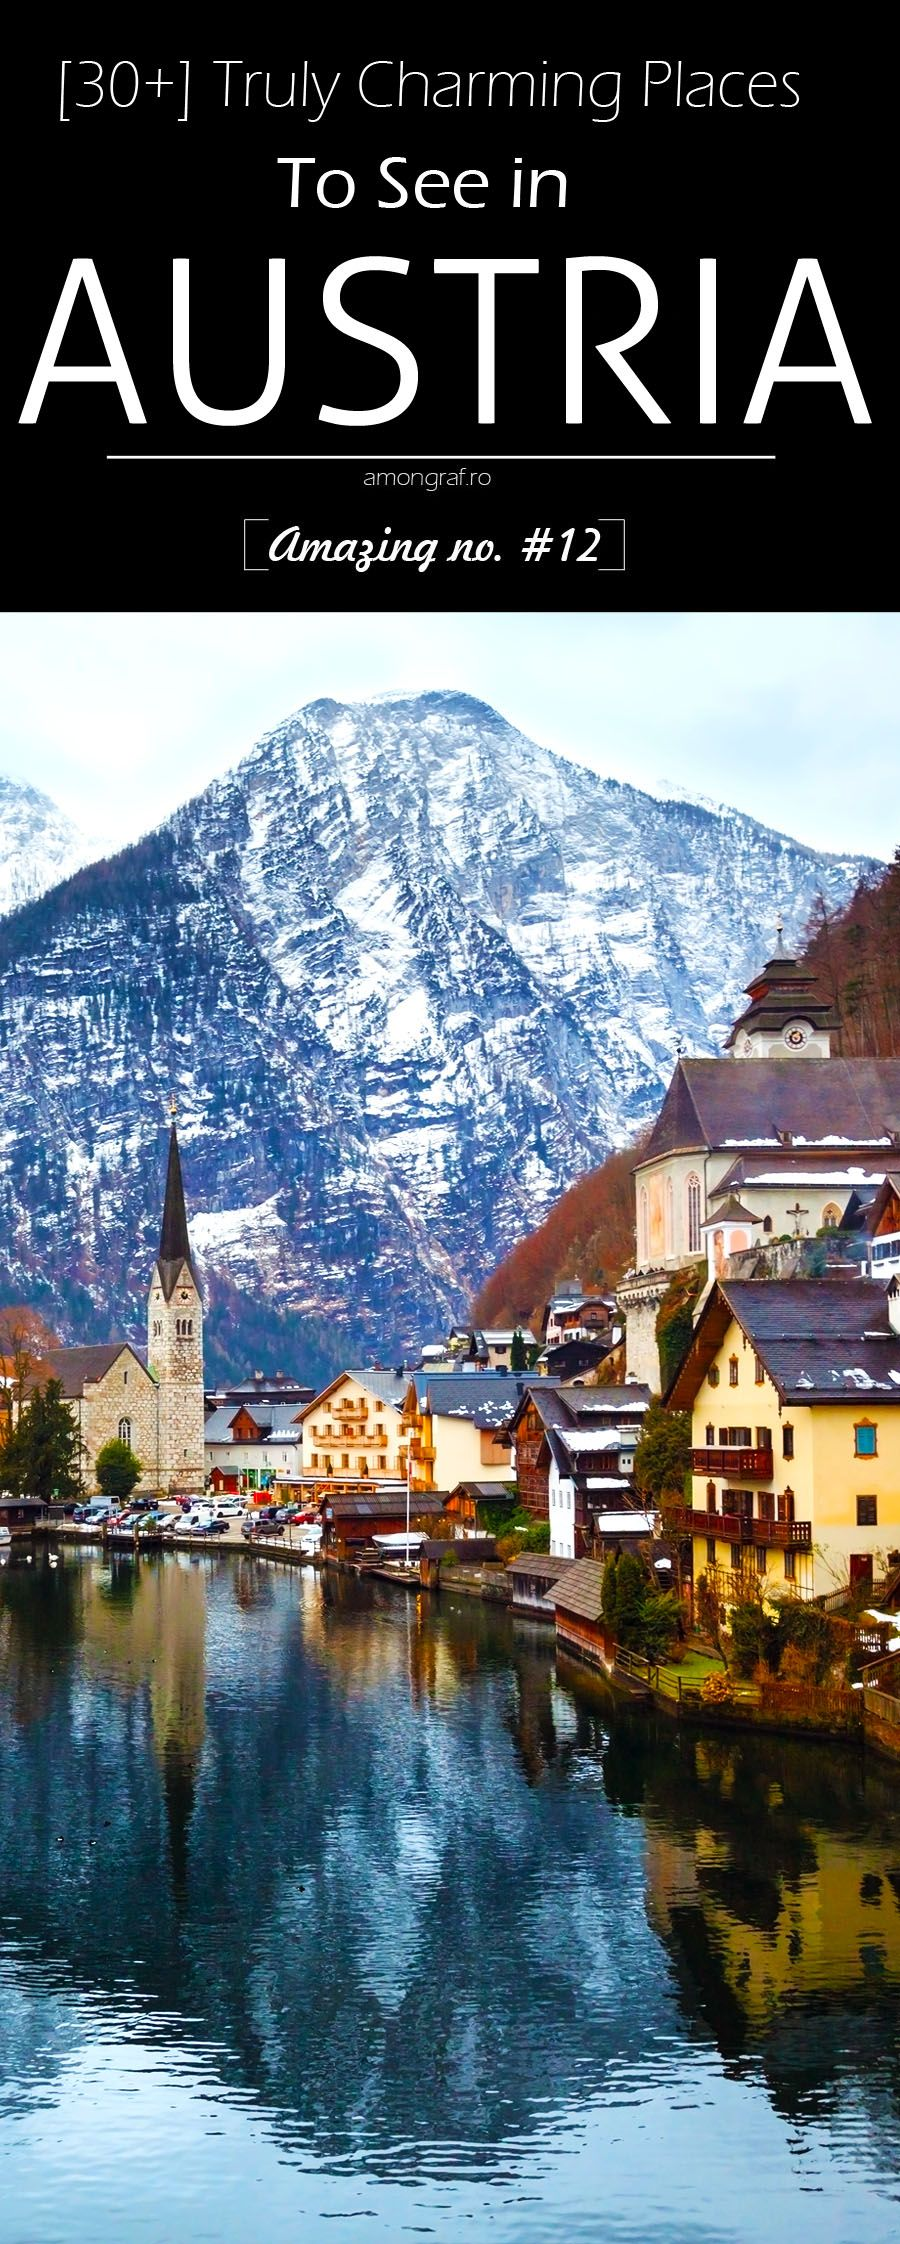 30+ Truly Charming Places To See in Austria  I wanna go to school in Vienna cuz it's really cheap tbh